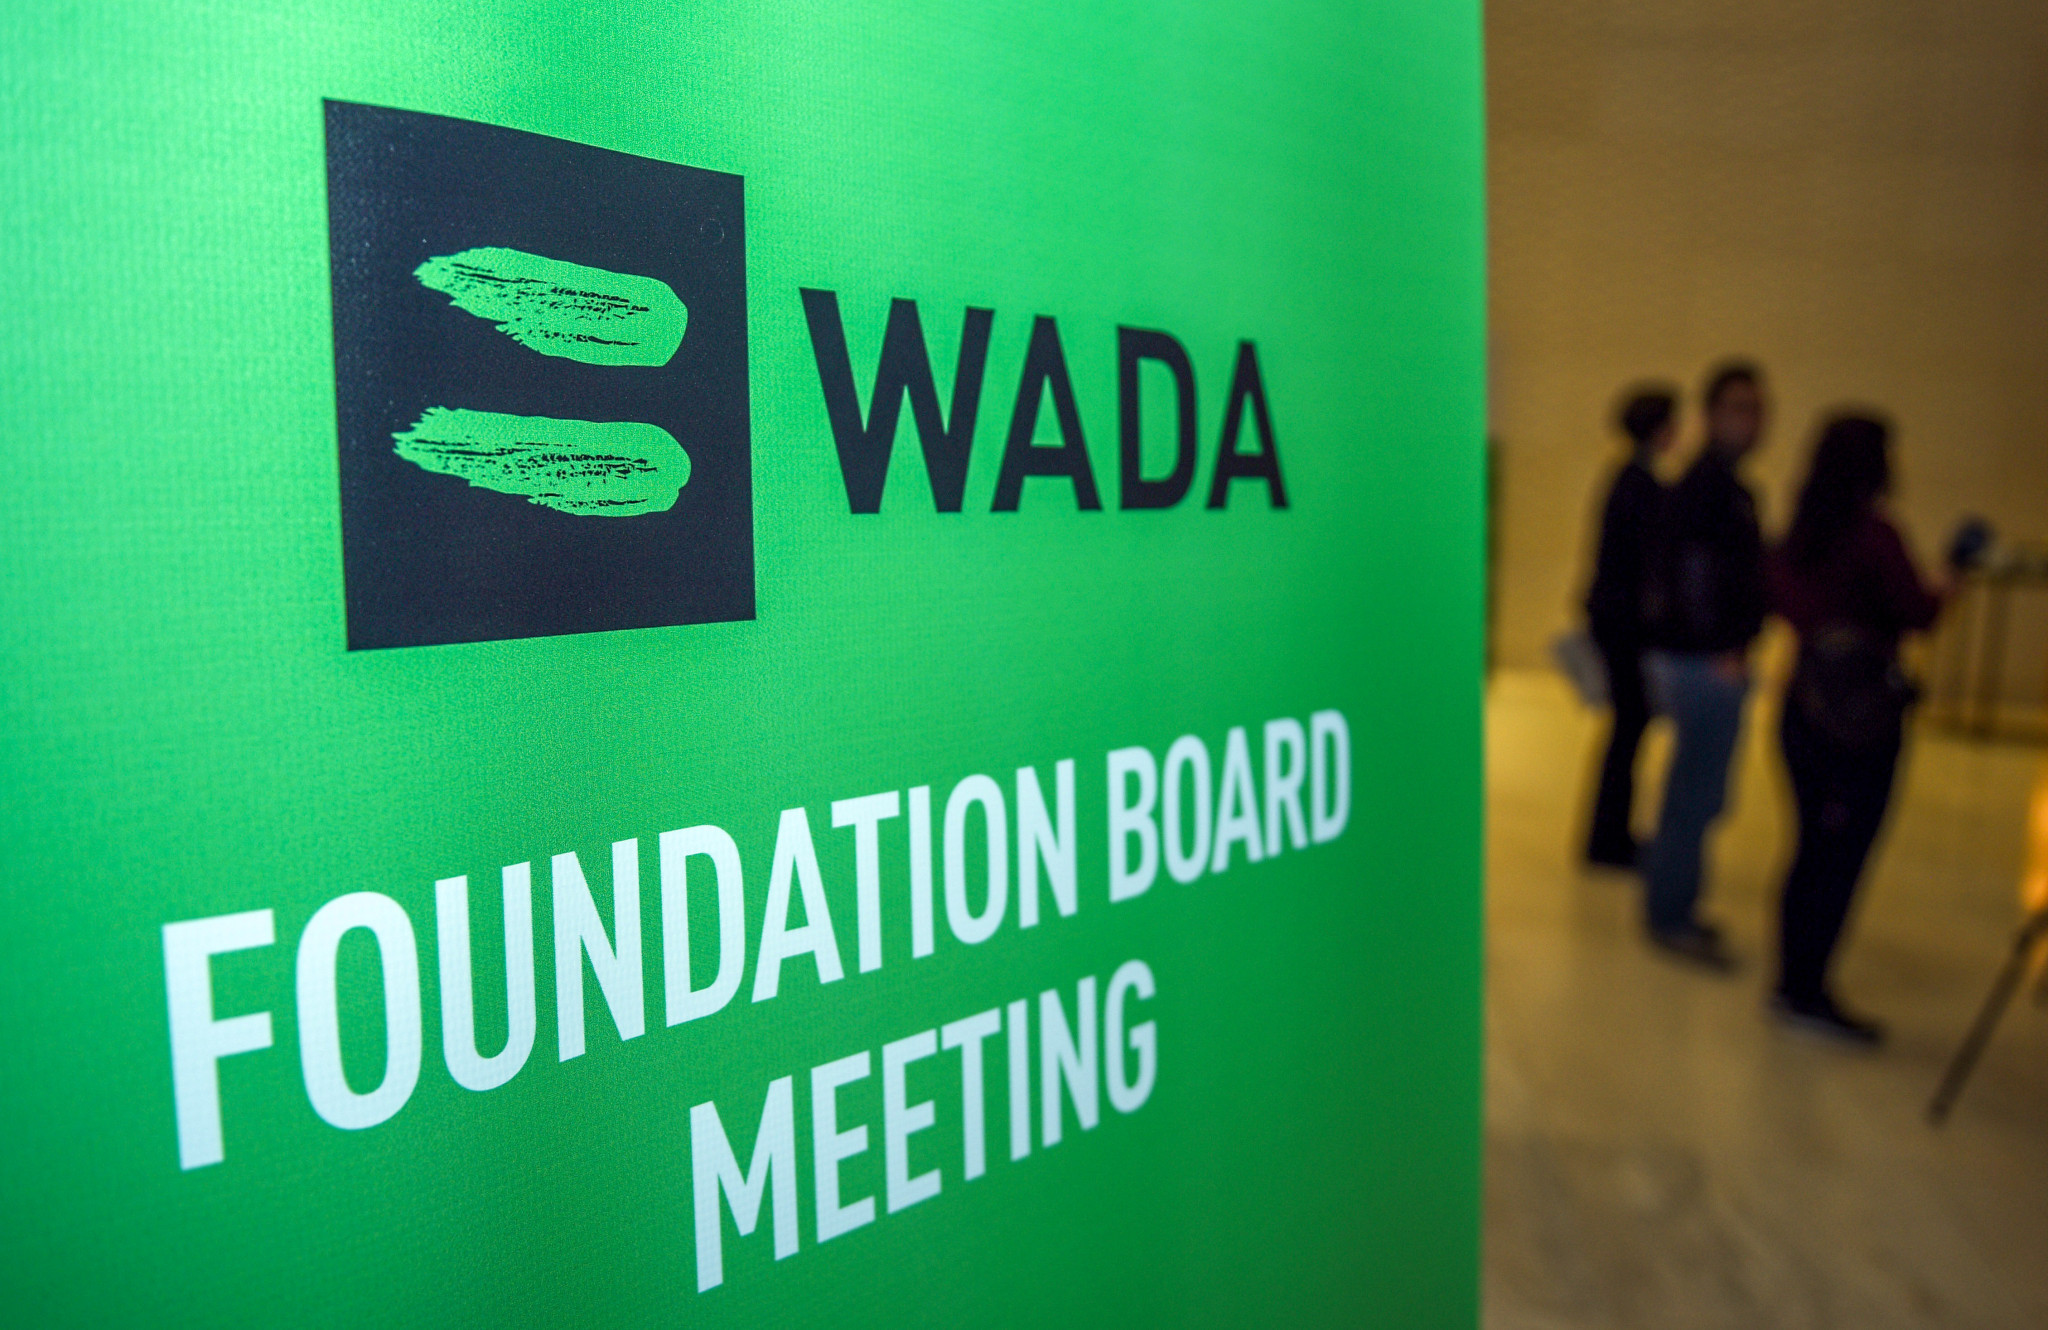 WADA announced Nigeria had been declared non-compliant at its Foundation Board meeting in Baku in November ©Getty Images